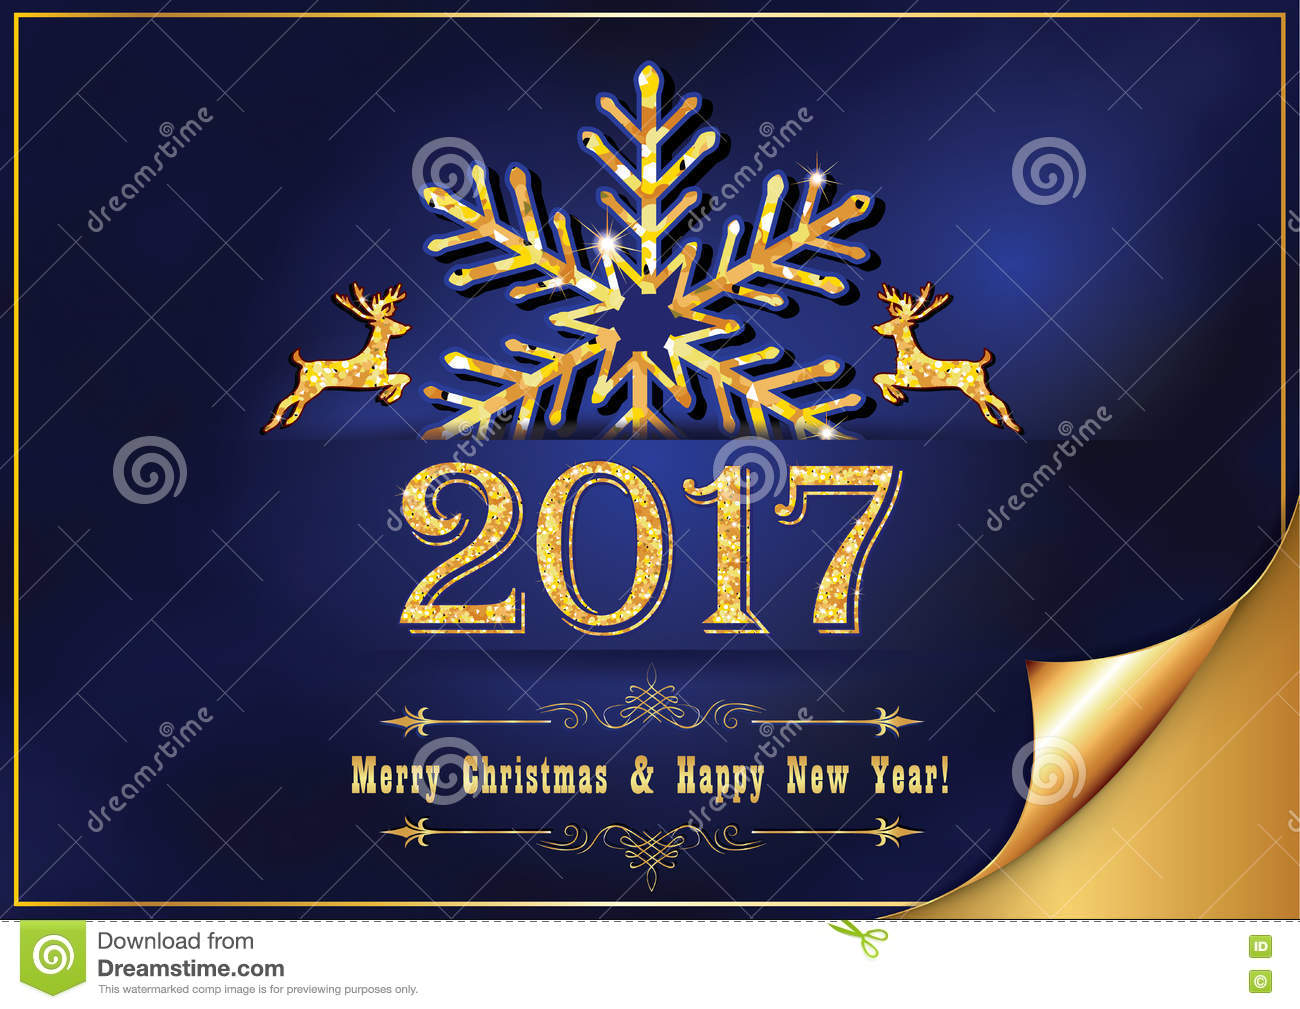 Corporate New Year Greeting Card For Print Stock Image - Image of ...